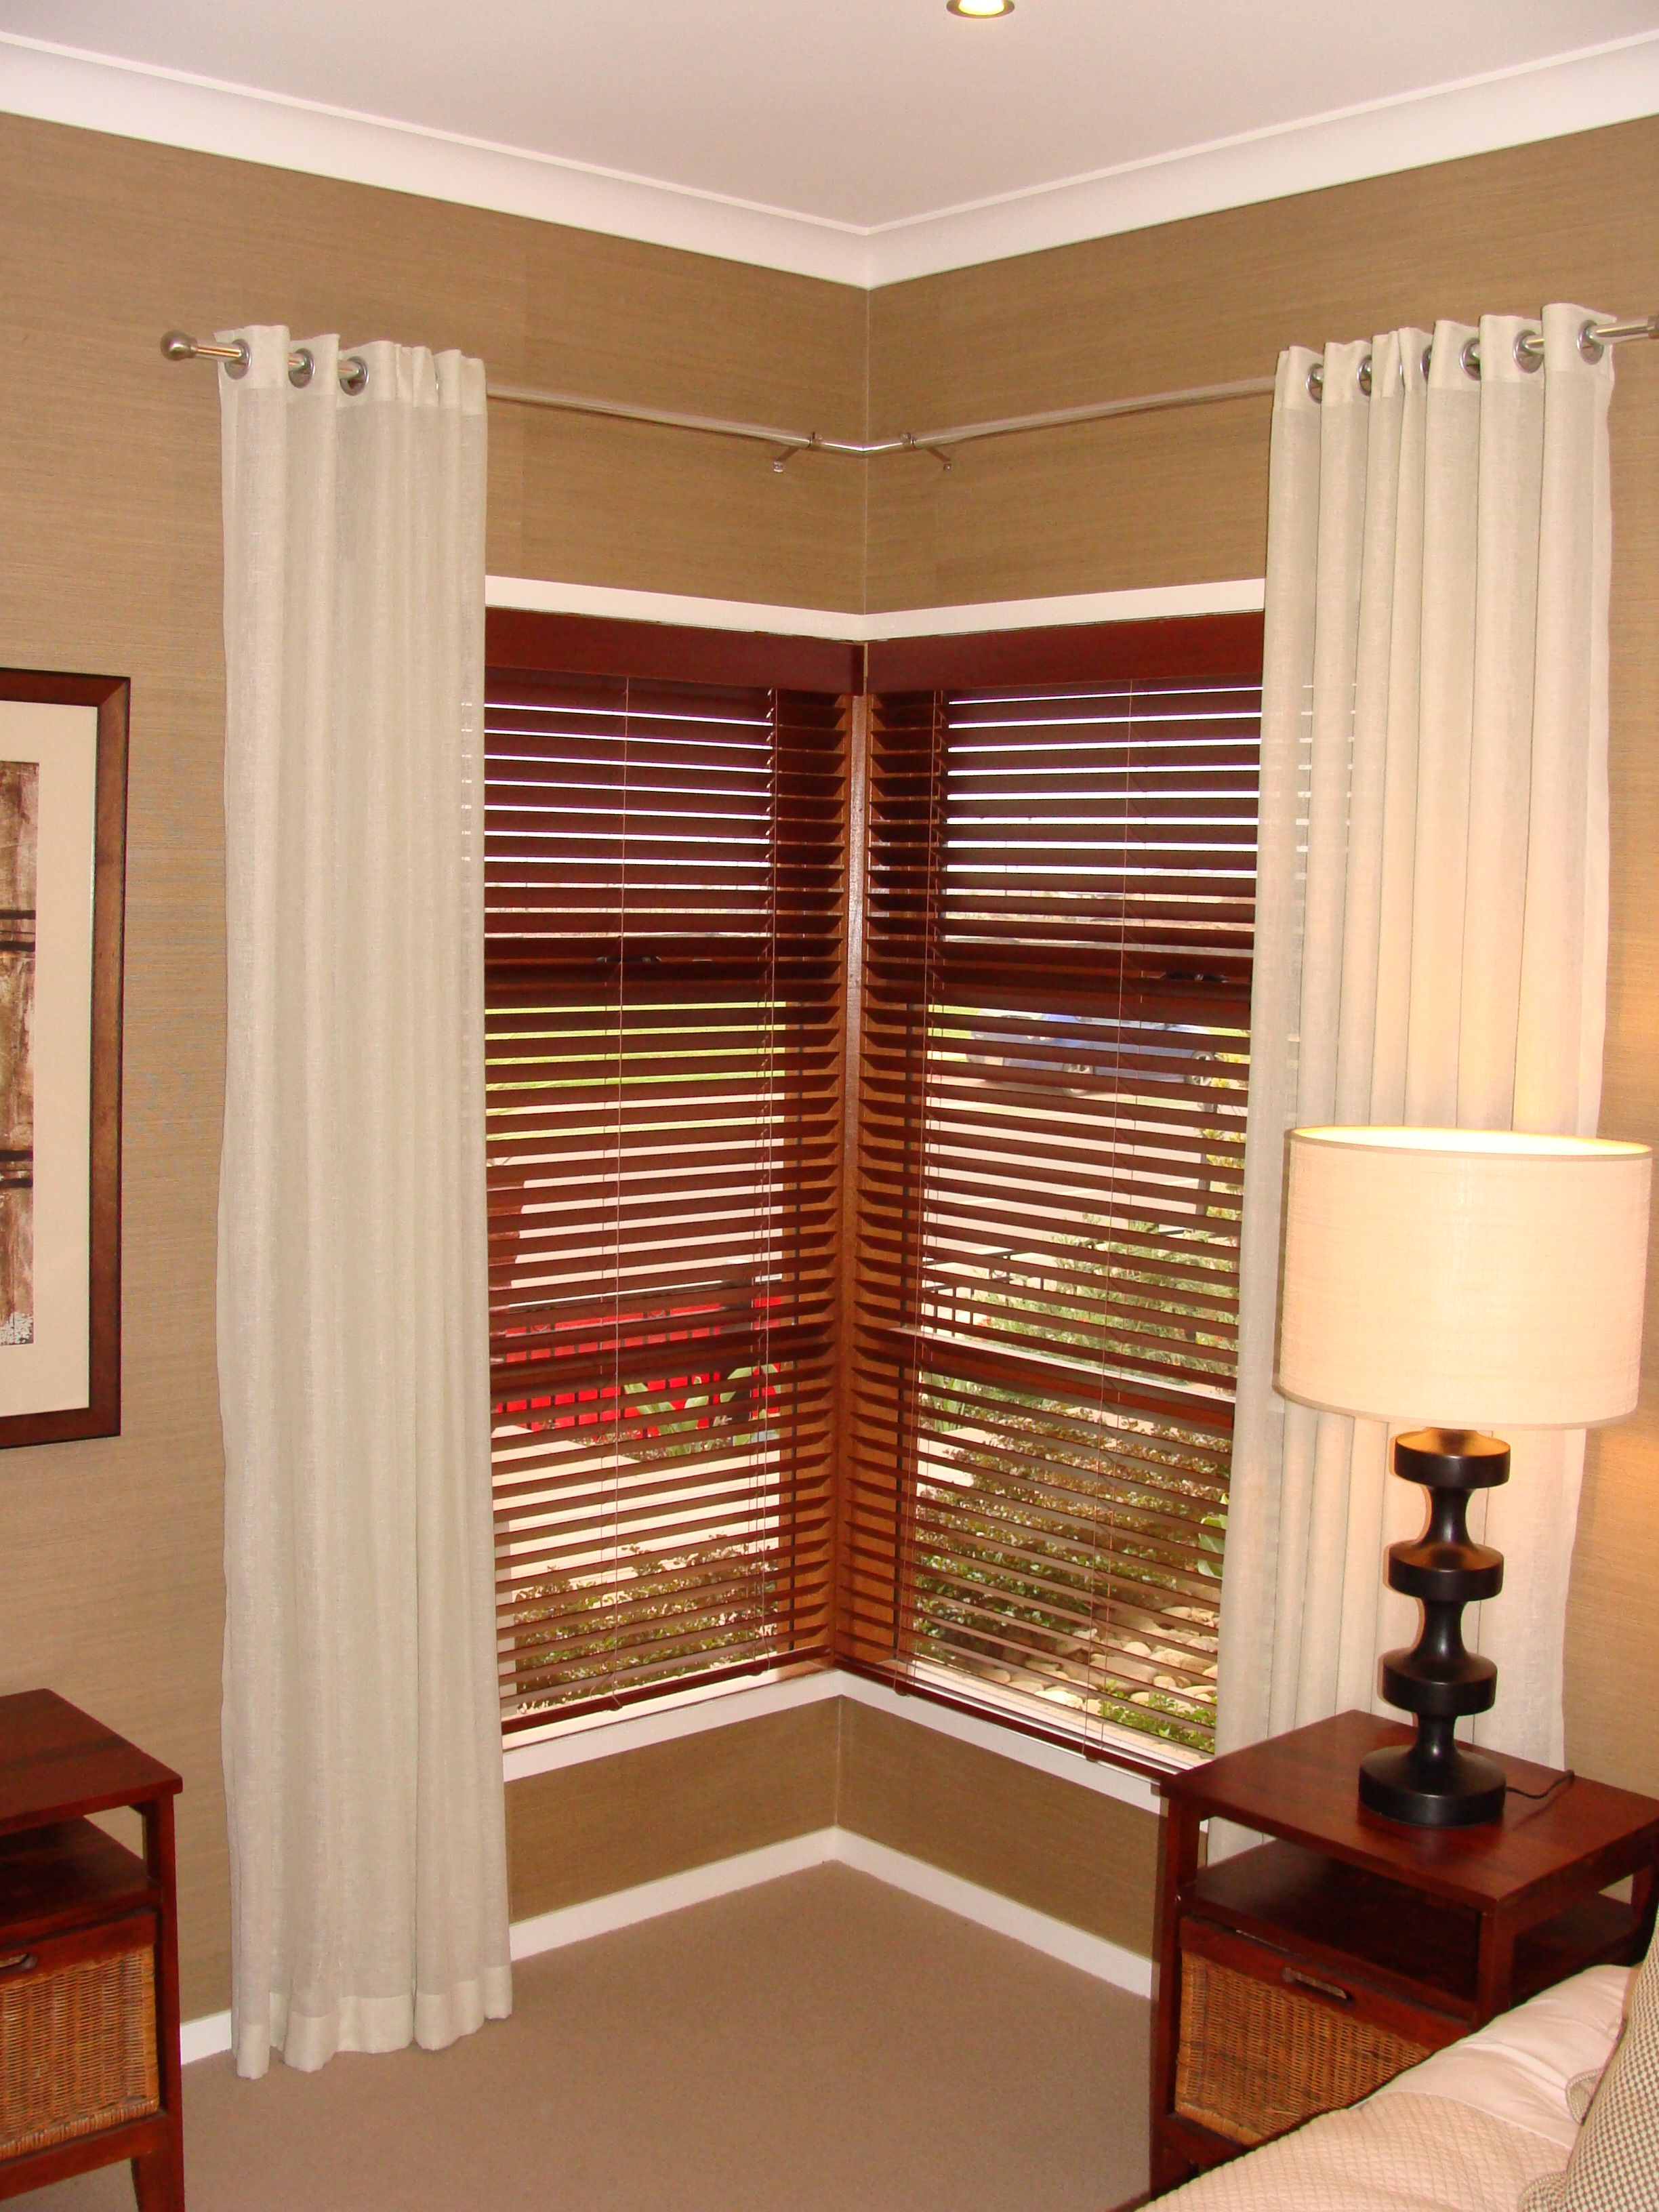 Wooden Venetian Blinds For Corner Window Design And White Fabric Drapier With Chrome Rail Wooden Blinds Blinds For Windows Blinds